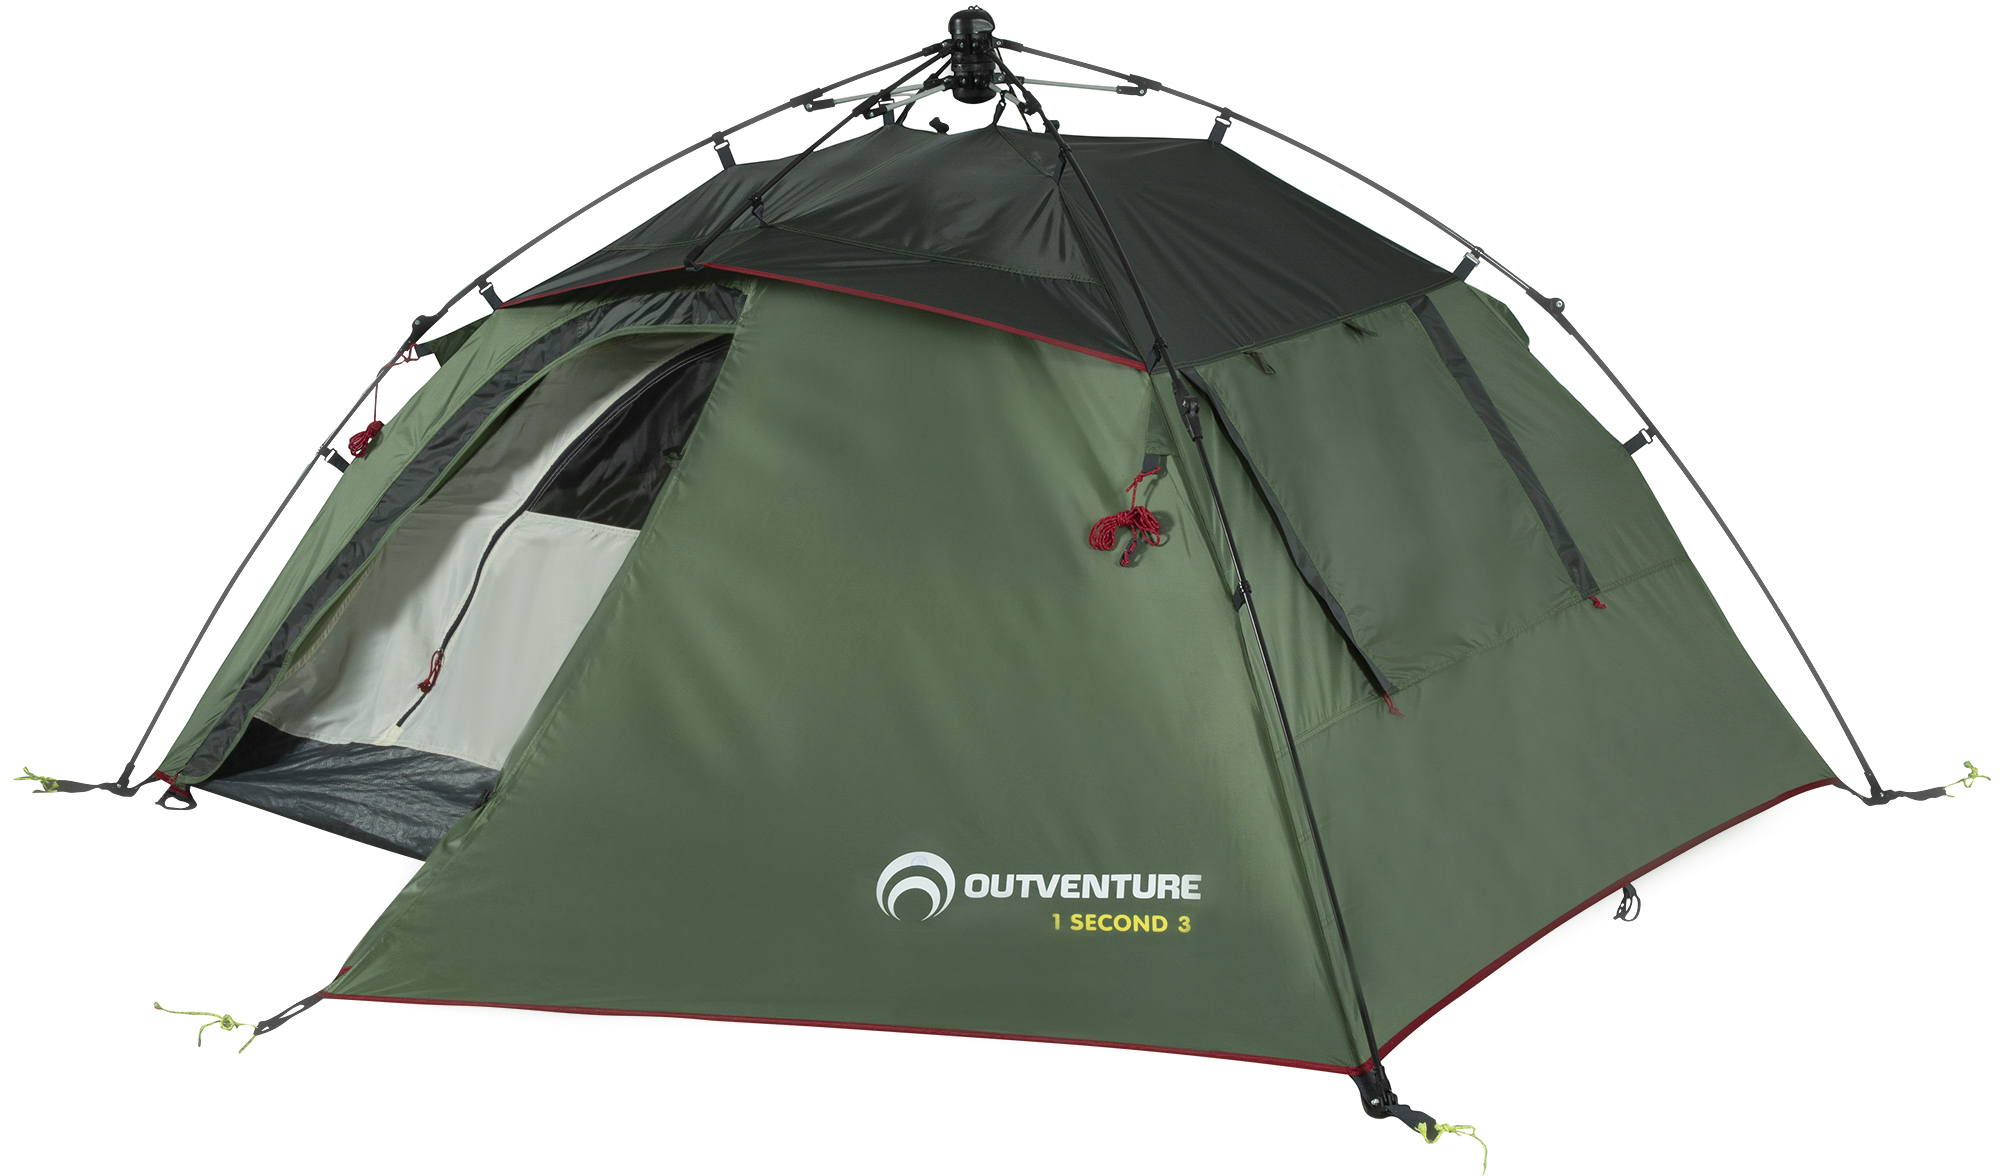 лучшая цена Outventure 1 SECOND TENT 3